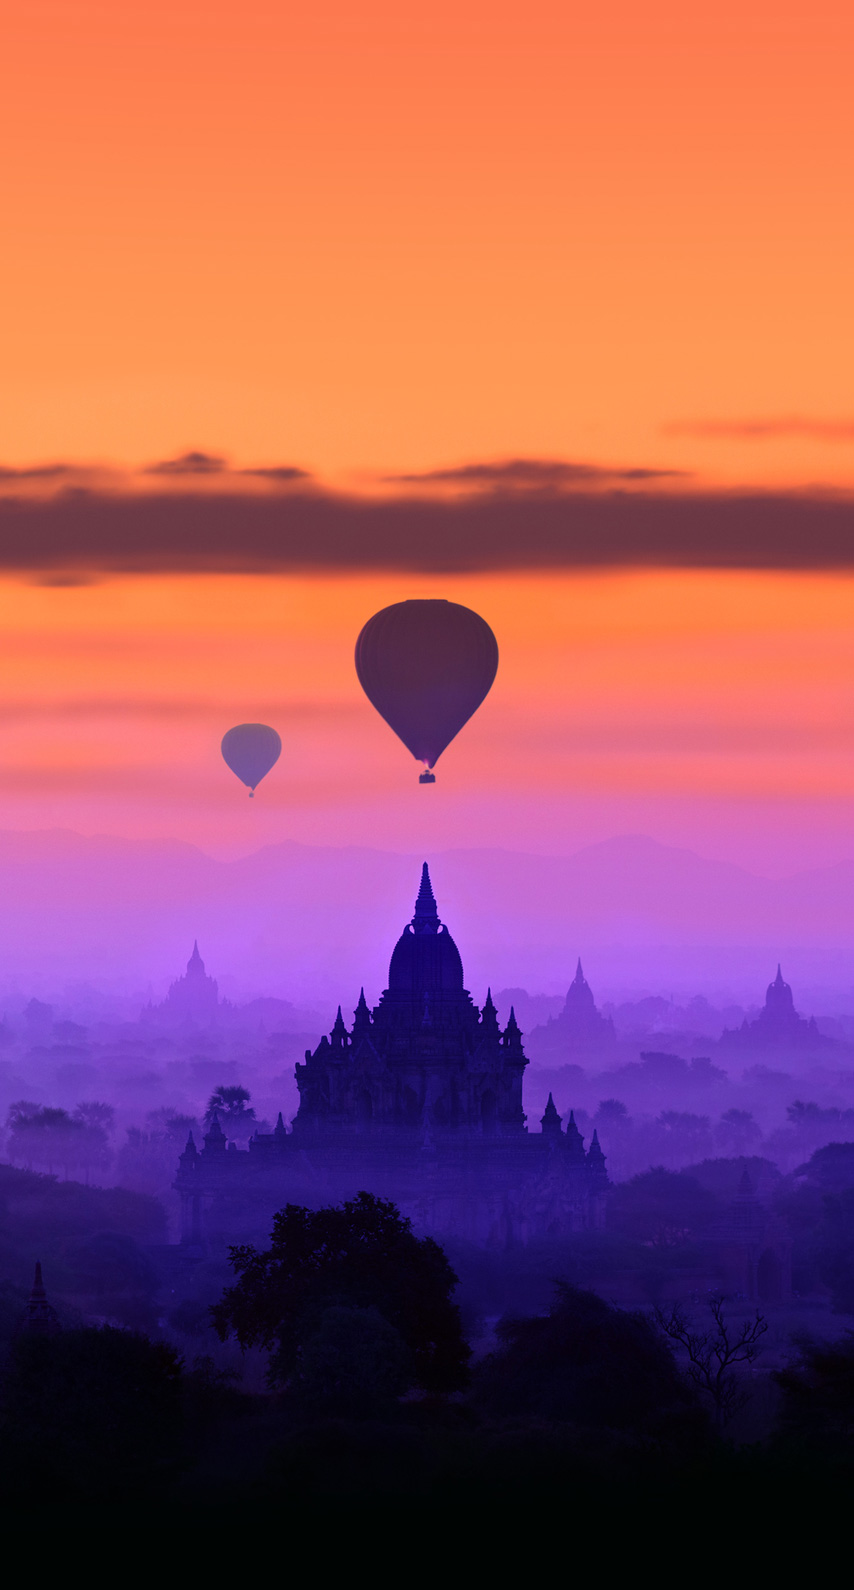 horizon, tourism, sight, temple, phenomenon, computer wallpaper, atmosphere of earth, daytime, afterglow, red sky at morning, hot air balloon, hot air ballooning